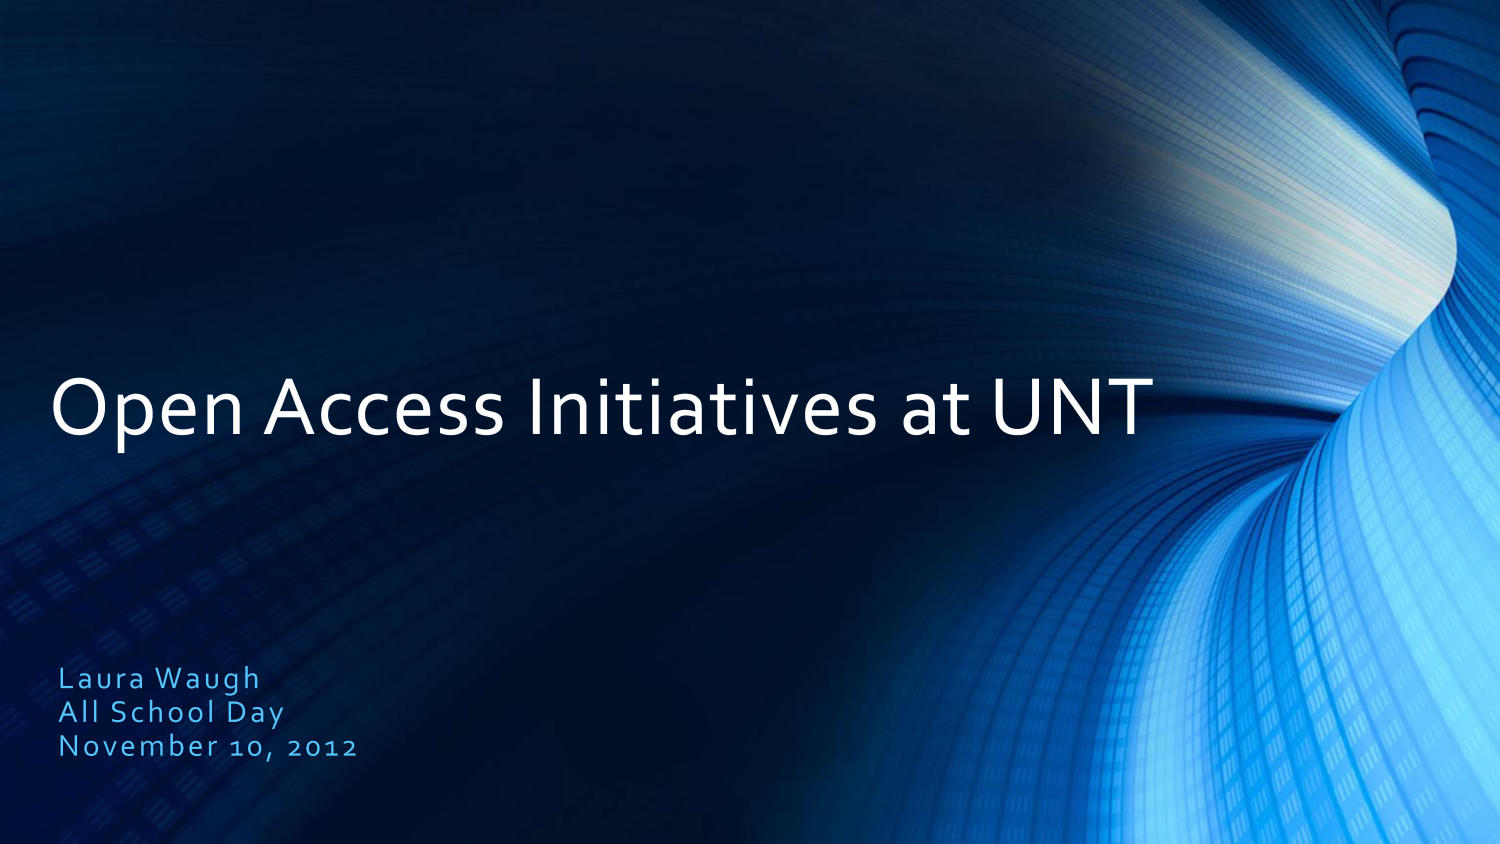 Open Access Initiatives at UNT                                                                                                      [Sequence #]: 1 of 20